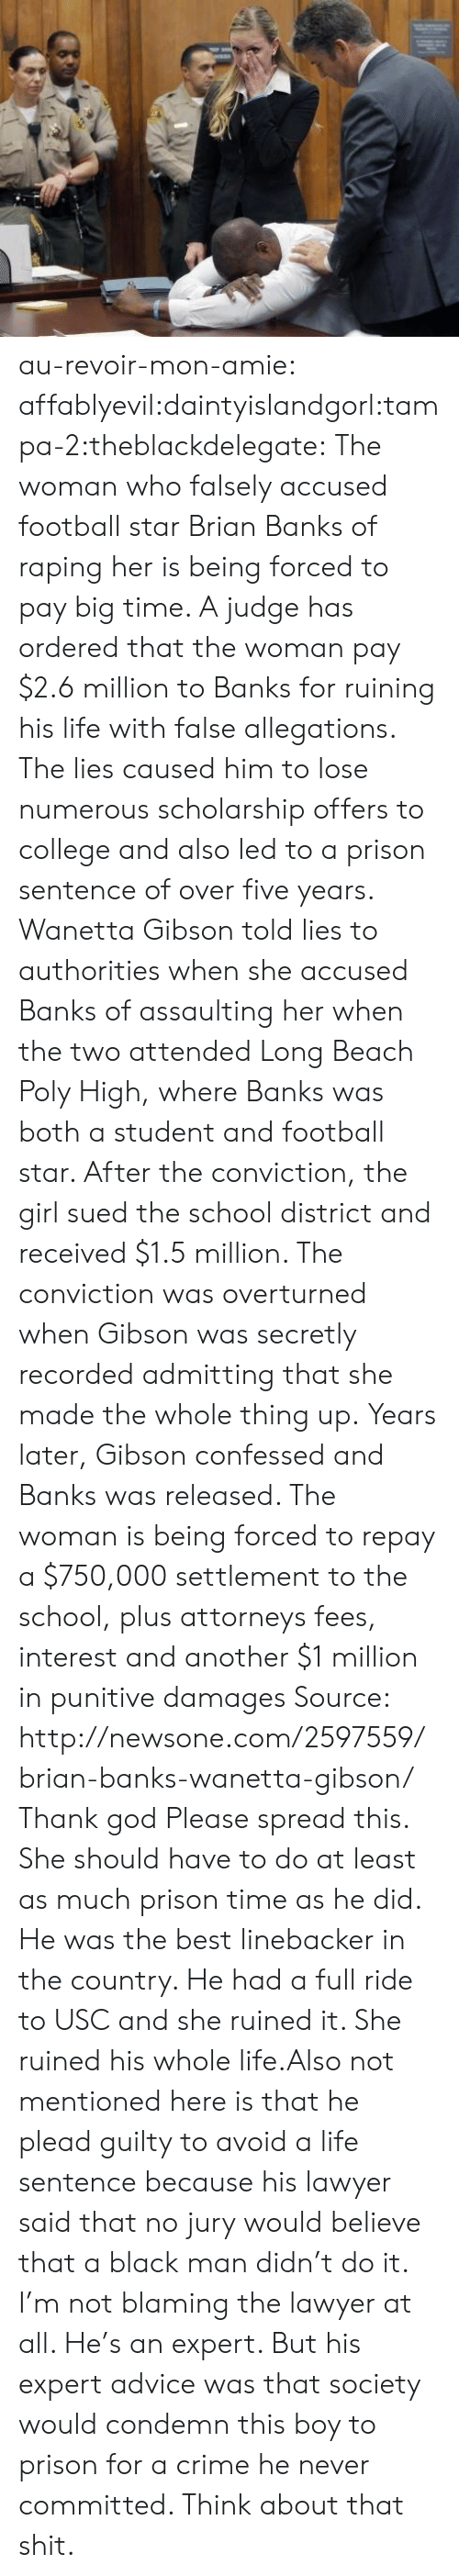 USC: au-revoir-mon-amie:  affablyevil:daintyislandgorl:tampa-2:theblackdelegate:  The woman who falsely accused football star Brian Banks of raping her is being forced to pay big time.   A judge has ordered that the woman pay $2.6 million to Banks for ruining his life with false allegations. The lies caused him to lose numerous scholarship offers to college and also led to a prison sentence of over five years.  Wanetta Gibson told lies to authorities when she accused Banks of assaulting her when the two attended Long Beach Poly High, where Banks was both a student and football star.   After the conviction, the girl sued the school district and received $1.5 million. The conviction was overturned when Gibson was secretly recorded admitting that she made the whole thing up.  Years later, Gibson confessed and Banks was released. The woman is being forced to repay a $750,000 settlement to the school, plus attorneys fees, interest and another $1 million in punitive damages  Source: http://newsone.com/2597559/brian-banks-wanetta-gibson/  Thank god  Please spread this. She should have to do at least as much prison time as he did.   He was the best linebacker in the country. He had a full ride to USC and she ruined it. She ruined his whole life.Also not mentioned here is that he plead guilty to avoid a life sentence because his lawyer said that no jury would believe that a black man didn't do it. I'm not blaming the lawyer at all. He's an expert. But his expert advice was that society would condemn this boy to prison for a crime he never committed. Think about that shit.